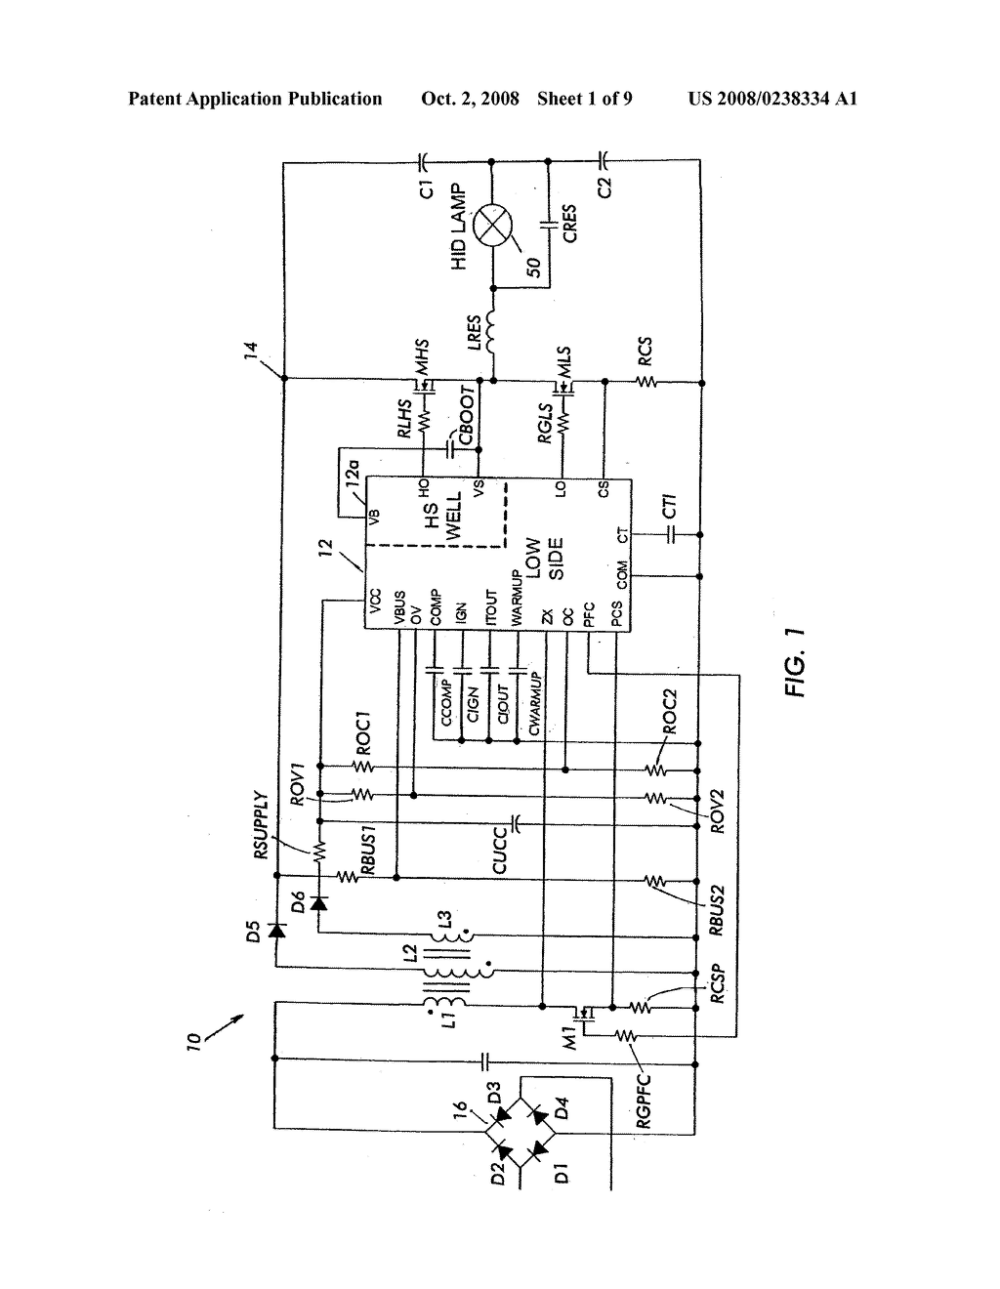 medium resolution of hid lamp ballast circuit diagram schematic and image 02 hid ballast circuit diagram